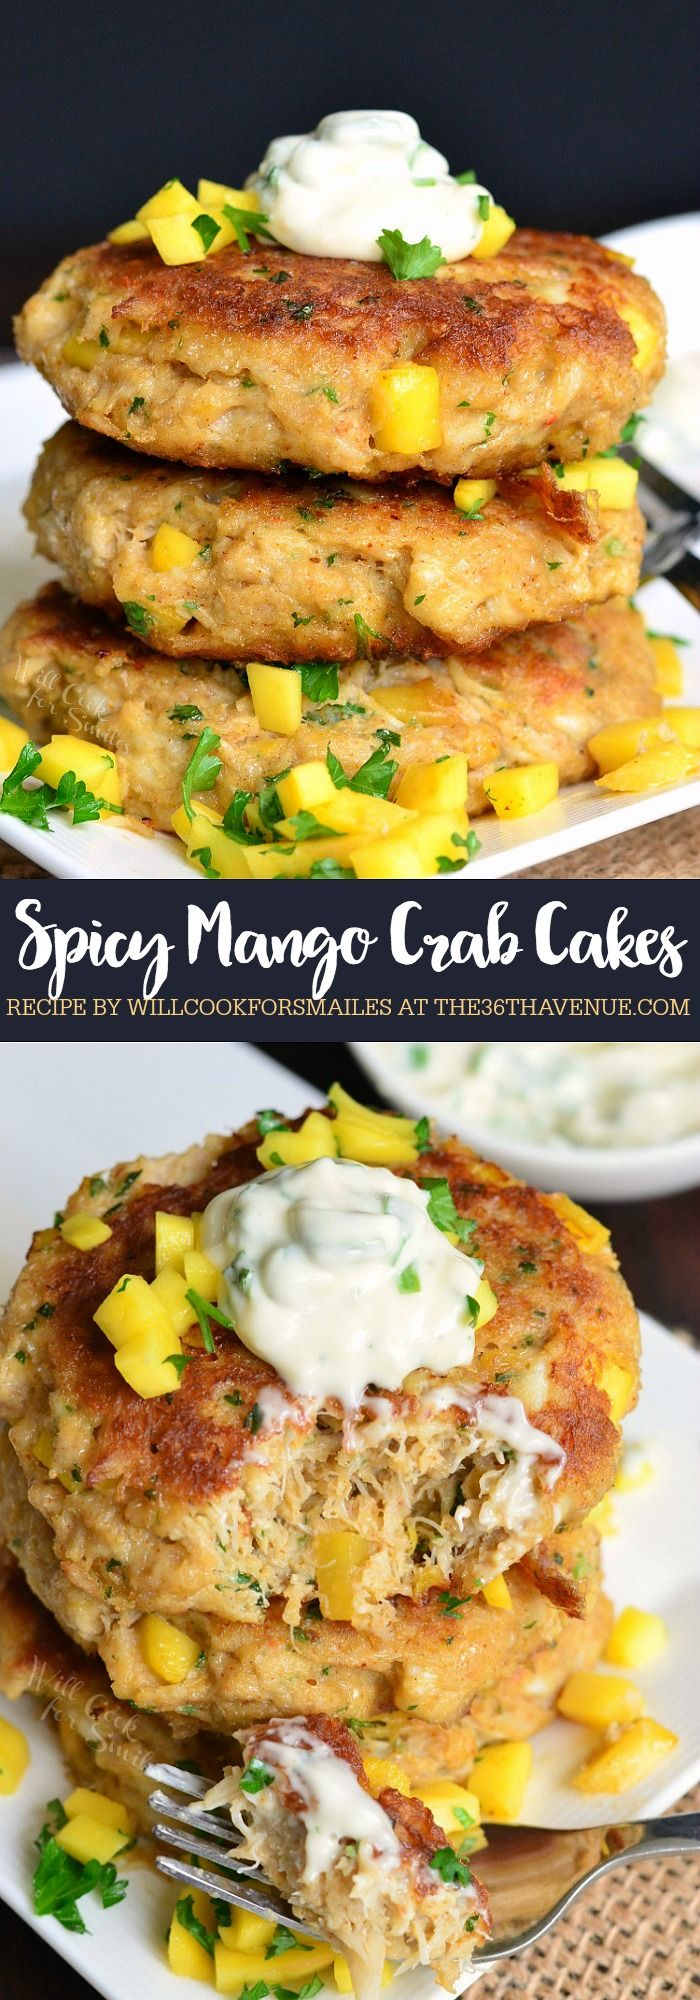 Spicy Mango Crab Cakes Recipe. These delicious crab cakes are made with fresh crab, sweetened with fresh mango, and served with sweet and spicy creamy sauce.